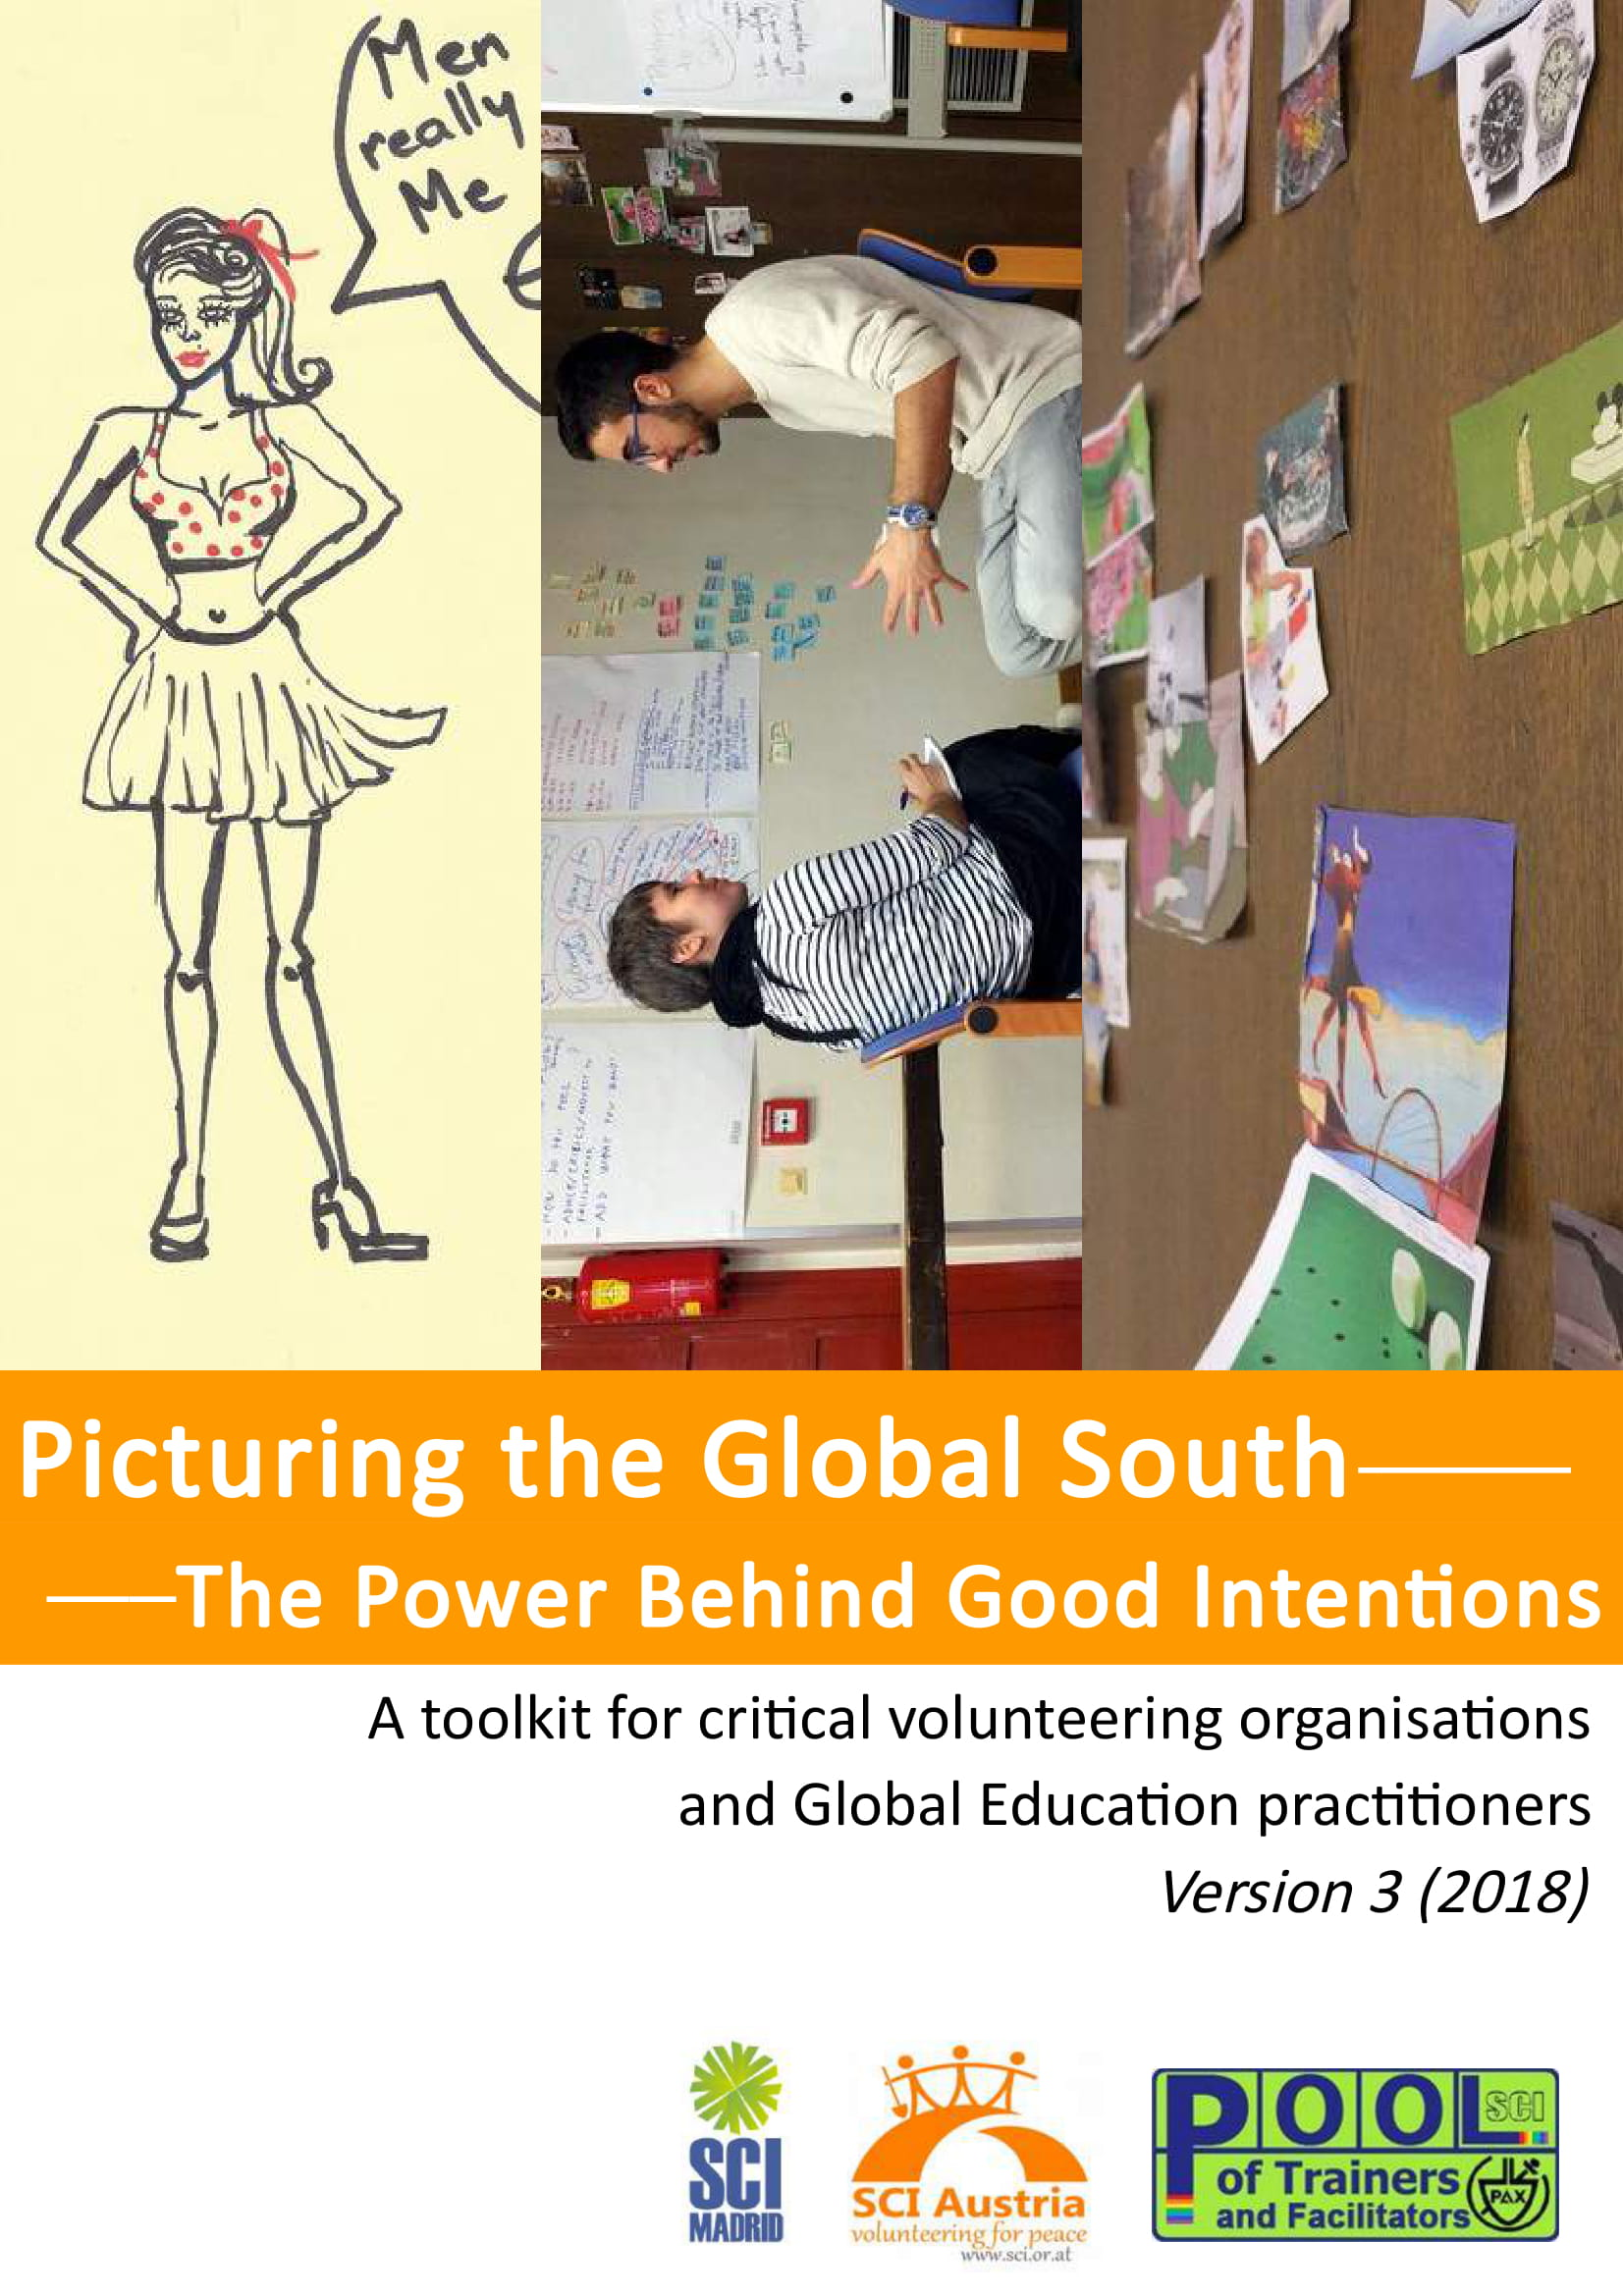 Picturing the Global South: The Power Behind Good Intentions